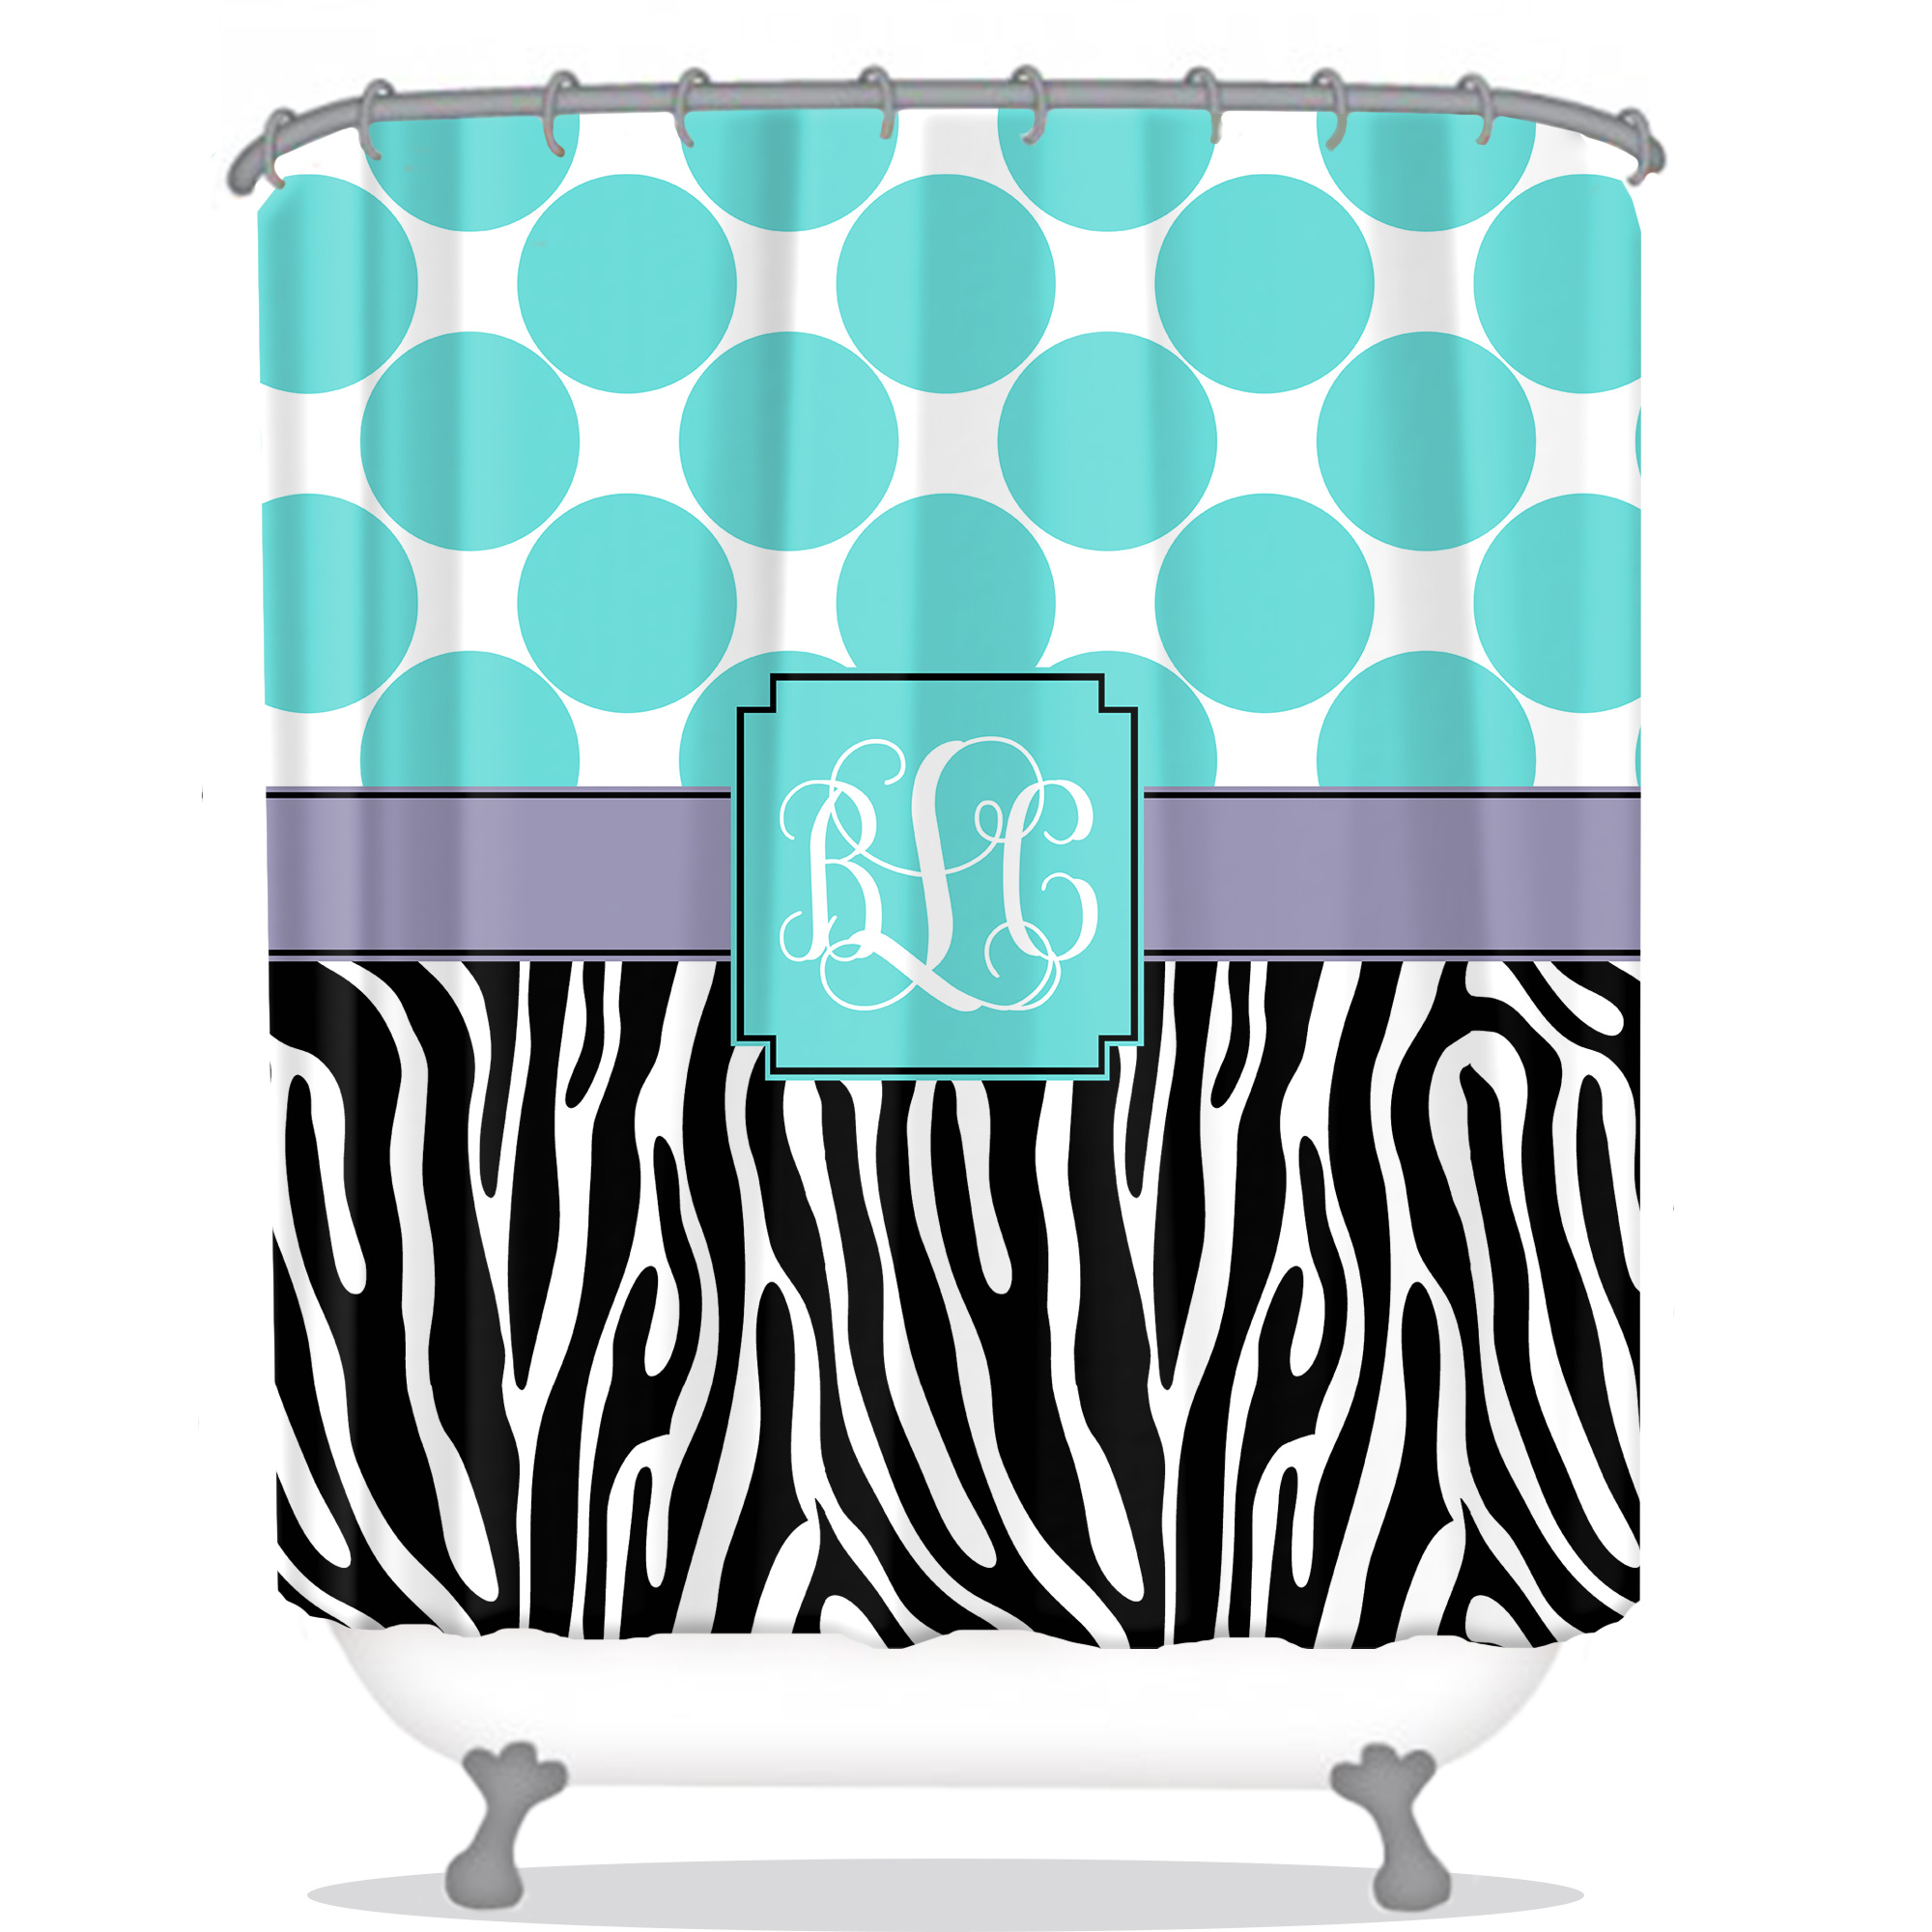 Zebra Personalized Shower Curtain Monogrammed Shower Curtain Custom Shower Curtain